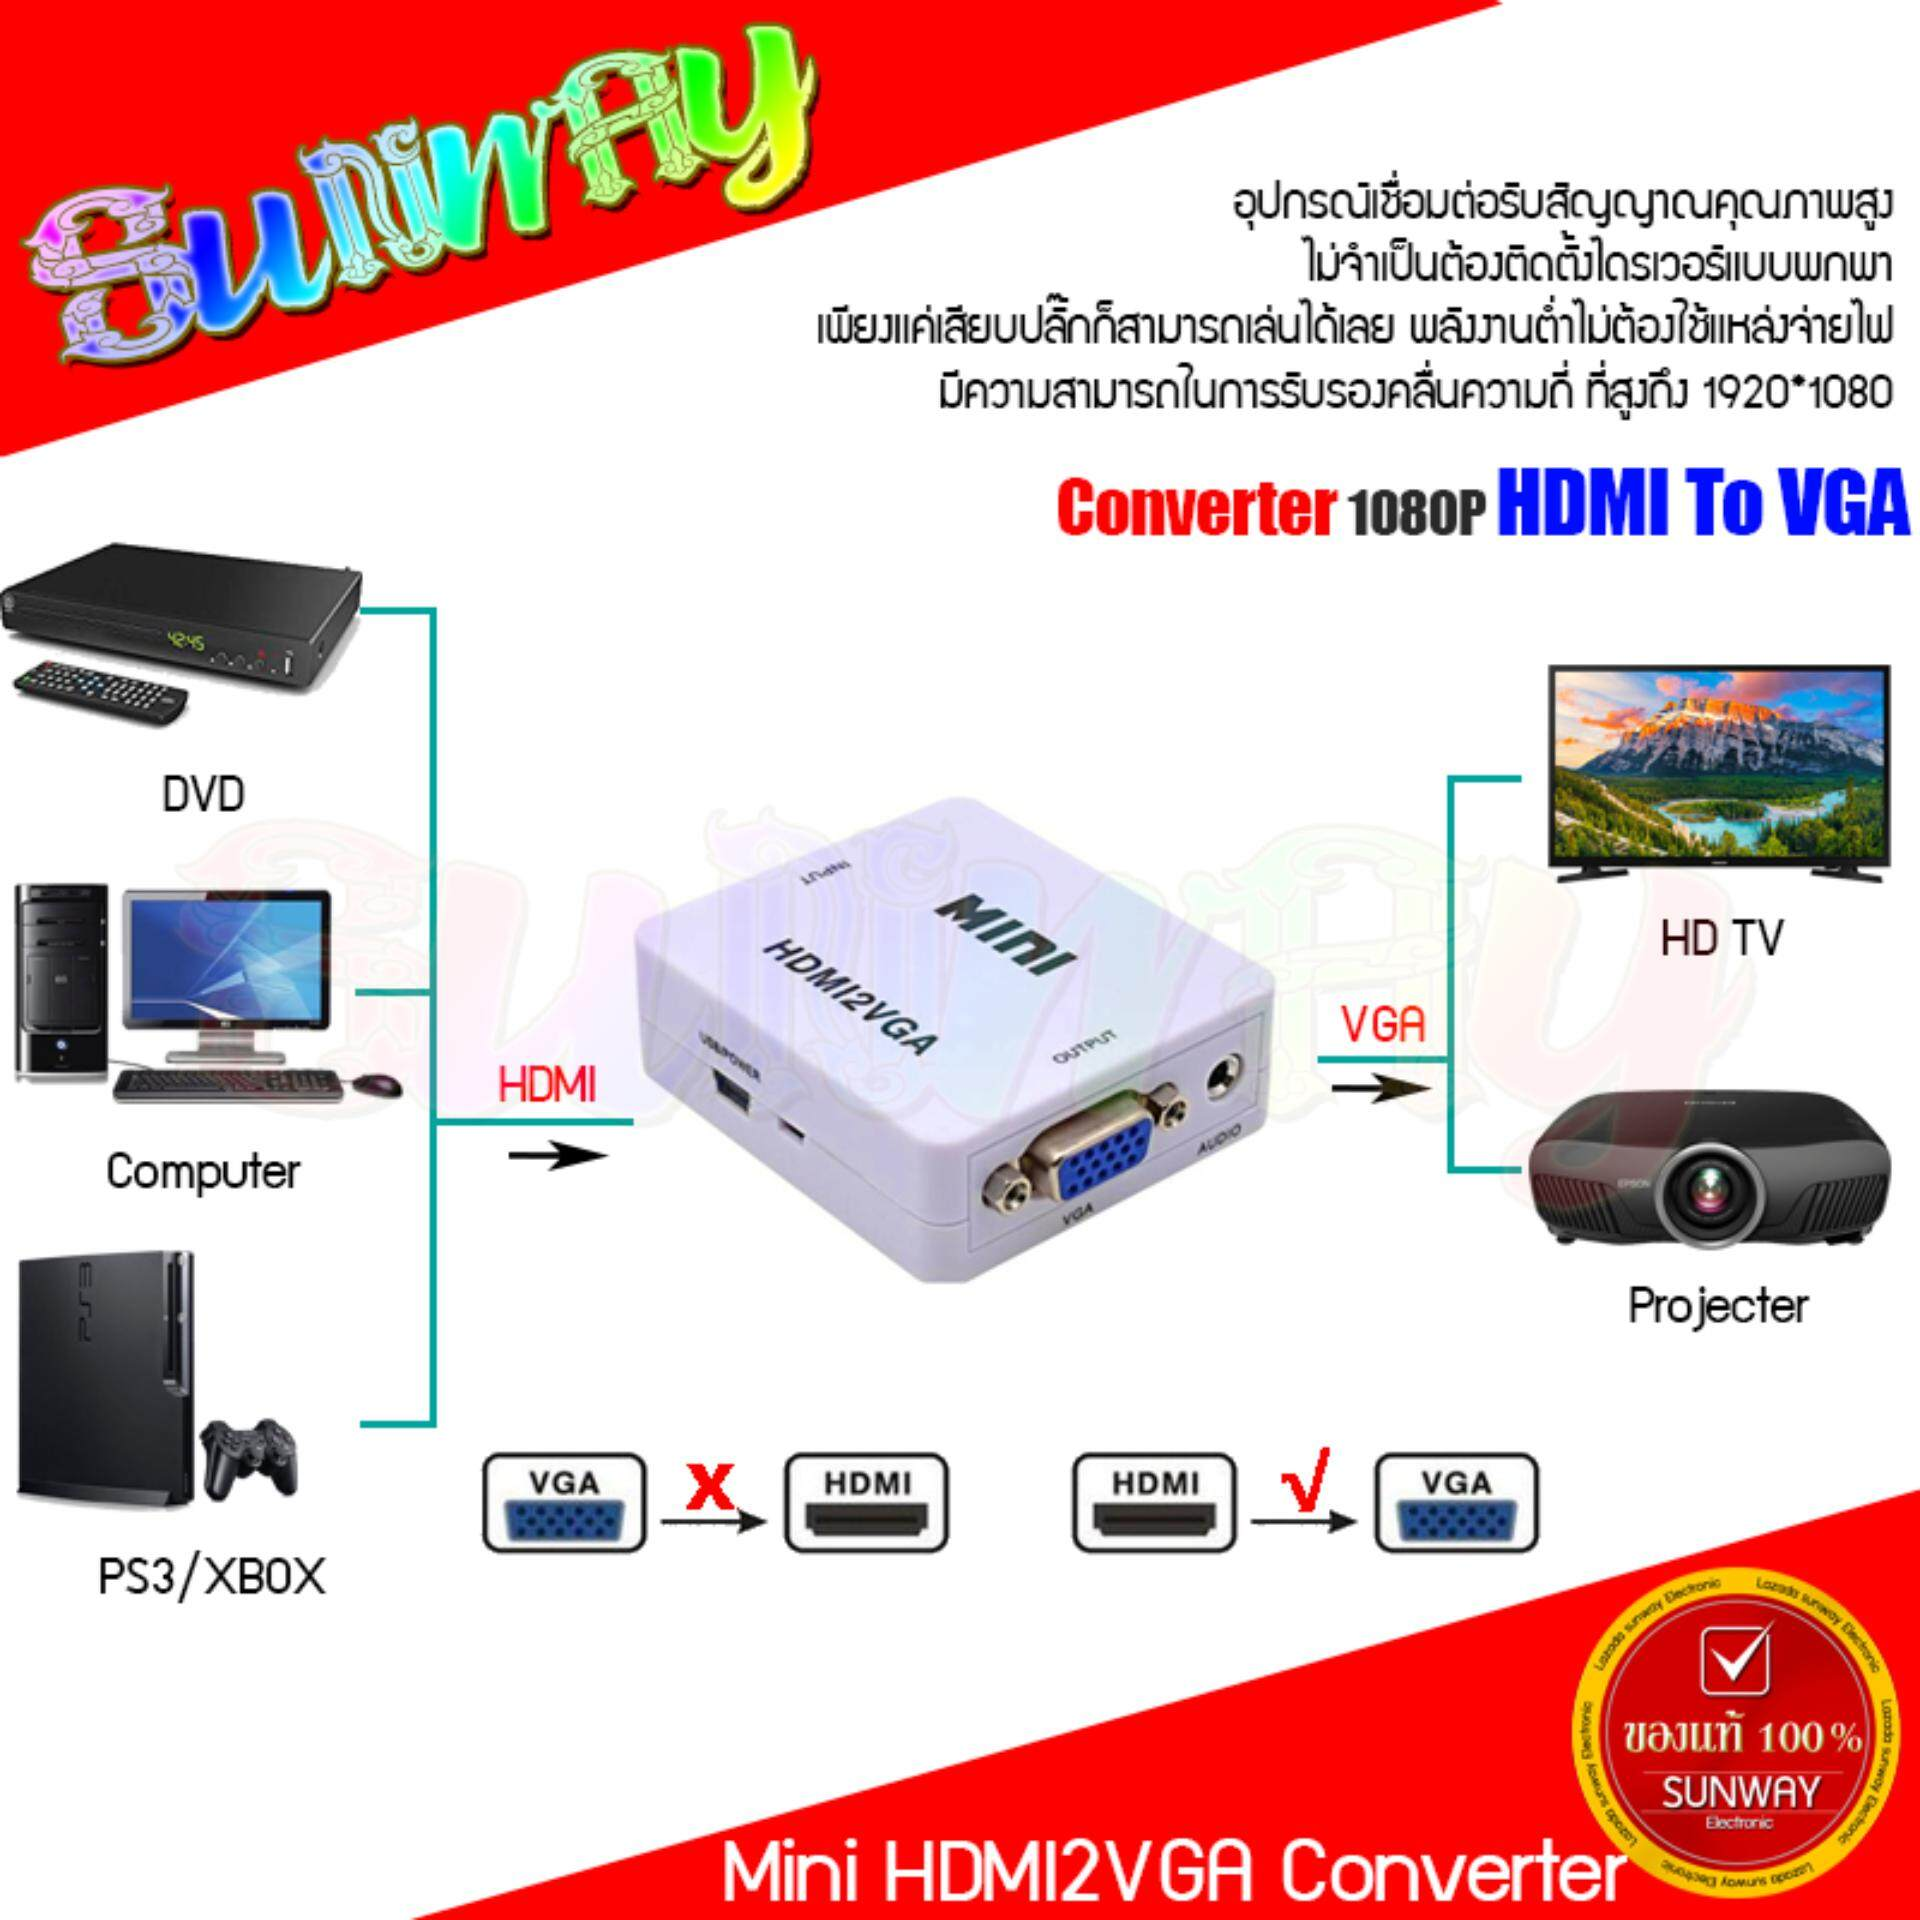 HDMI To VGA Converter With Audio Port HDMI2VGA 1080P Adapter Connector For PC Laptop To HDTV Projector HDMI 2 VGA Cable